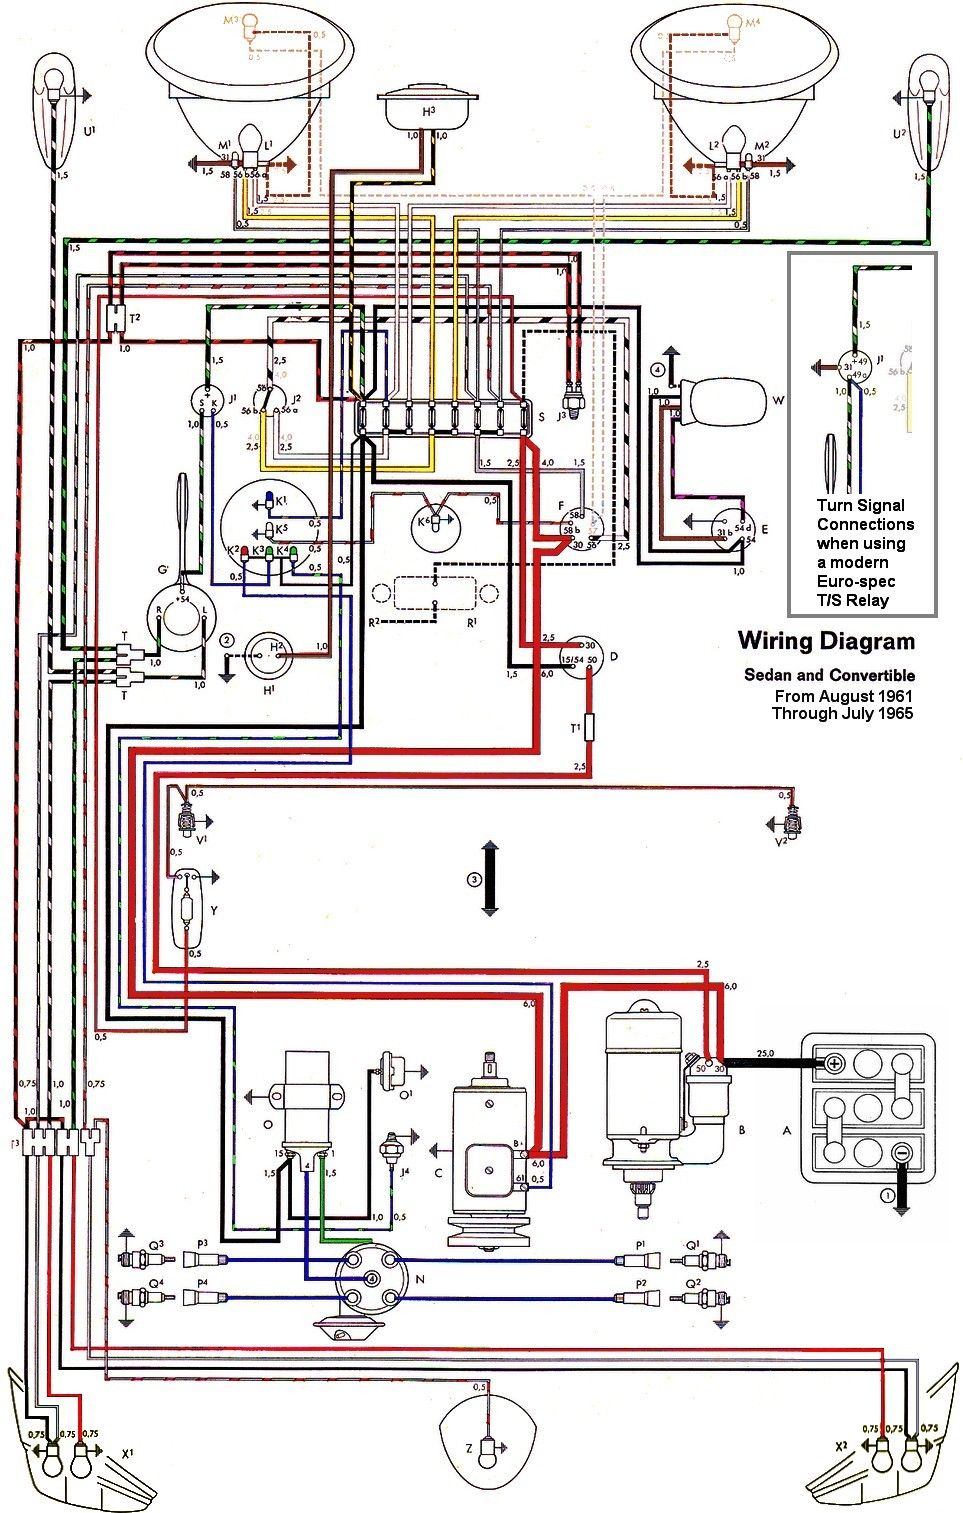 wiring diagram vw beetle sedan and convertible 1961 1965 vw rh pinterest com VW Bug Alternator Wiring VW Bug Starter Wiring